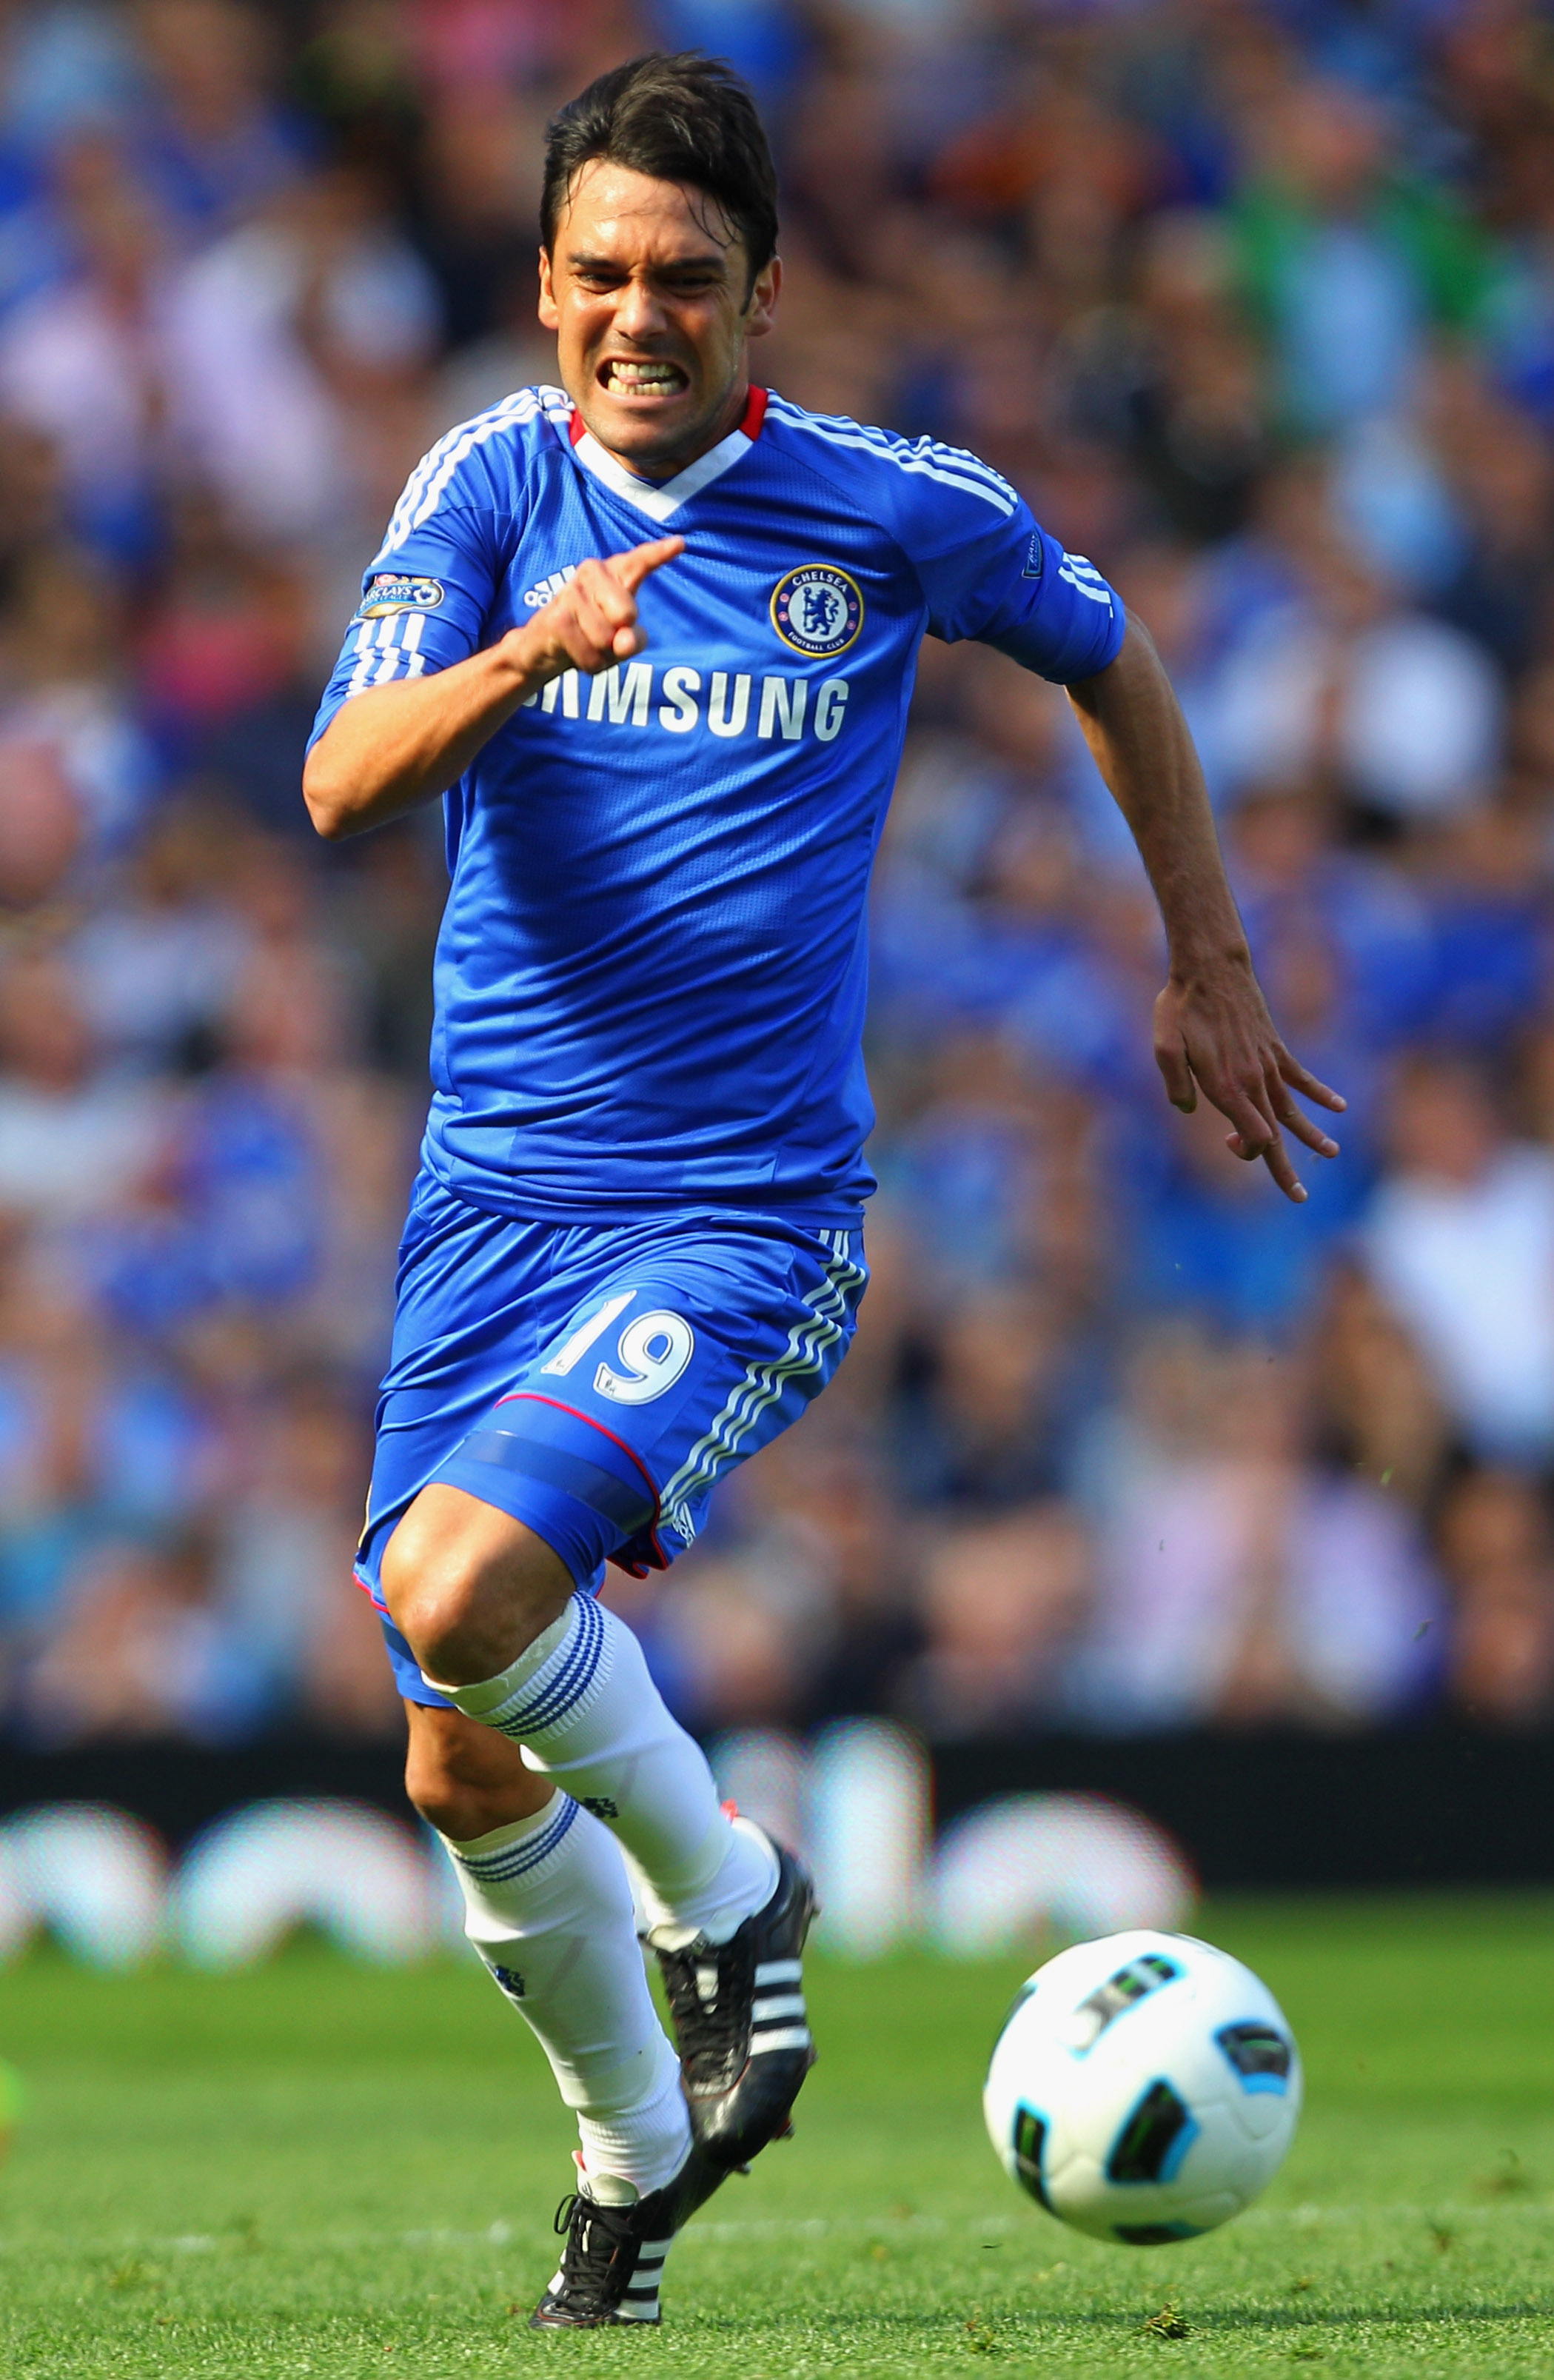 Ferreira lacks the pace needed to cope with the Premier League's best wingers